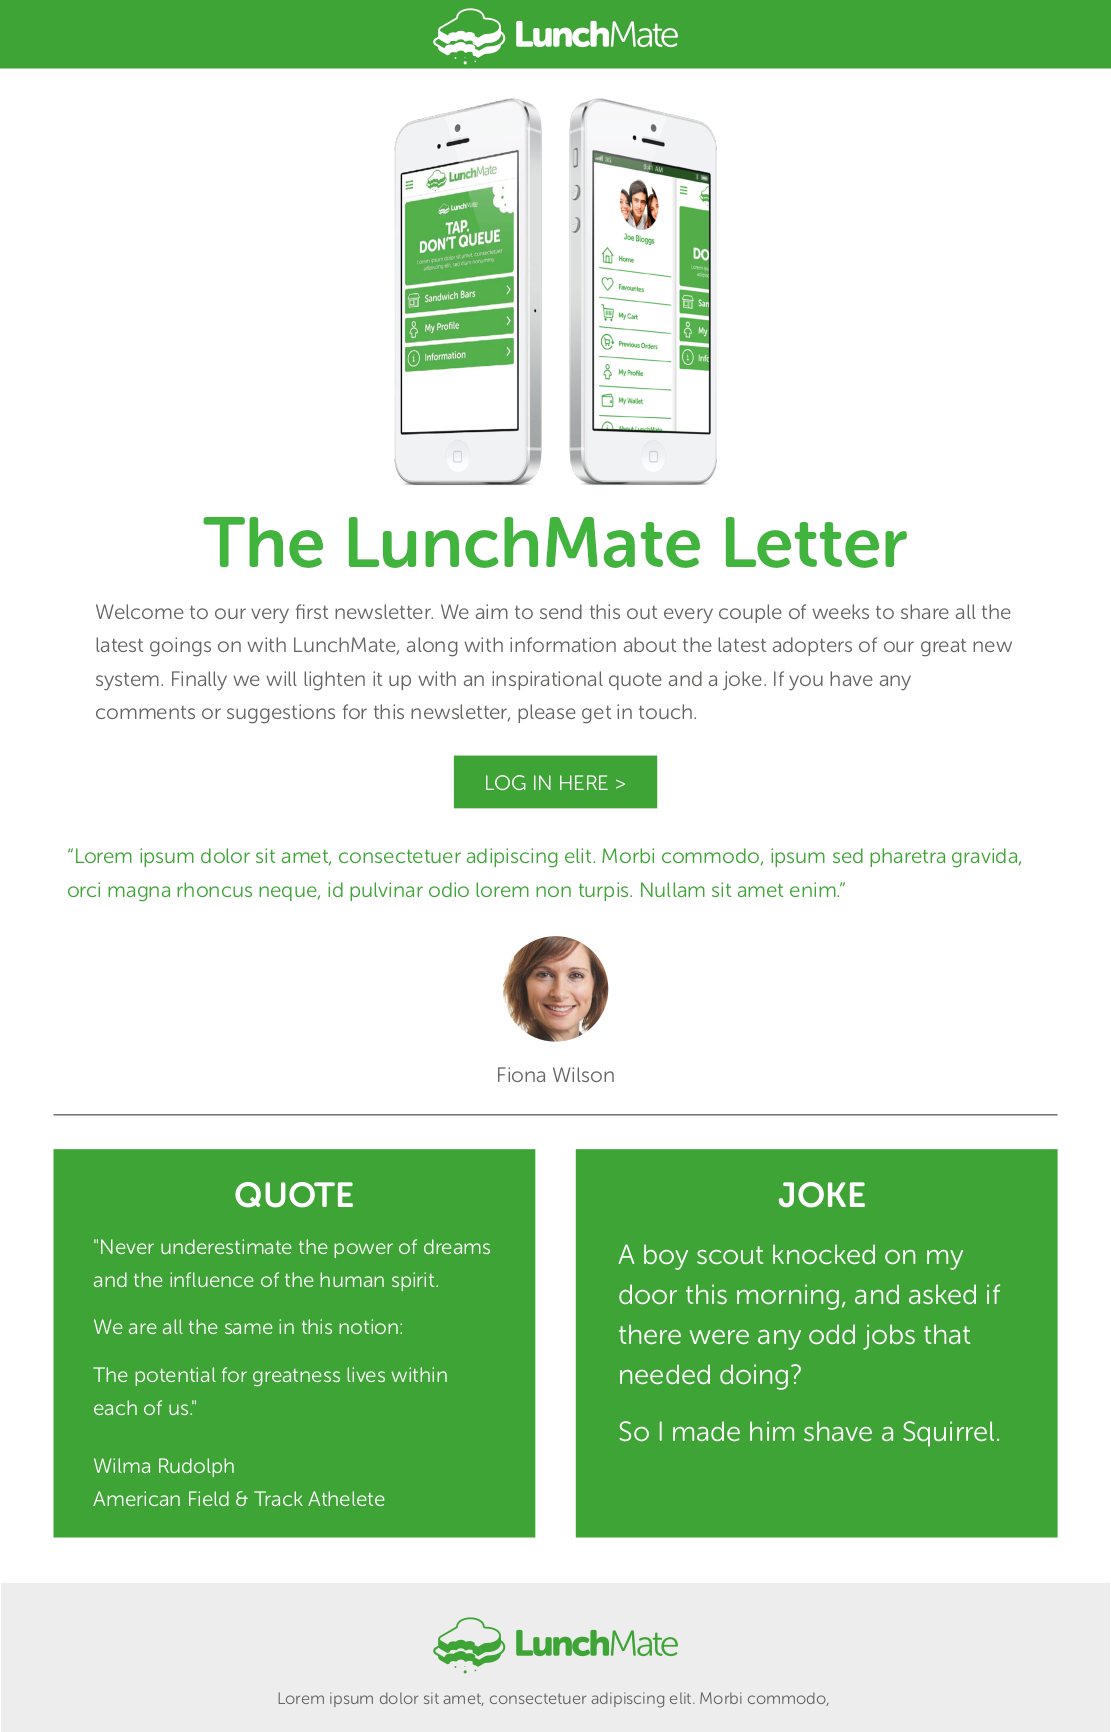 Lunchmate Letter